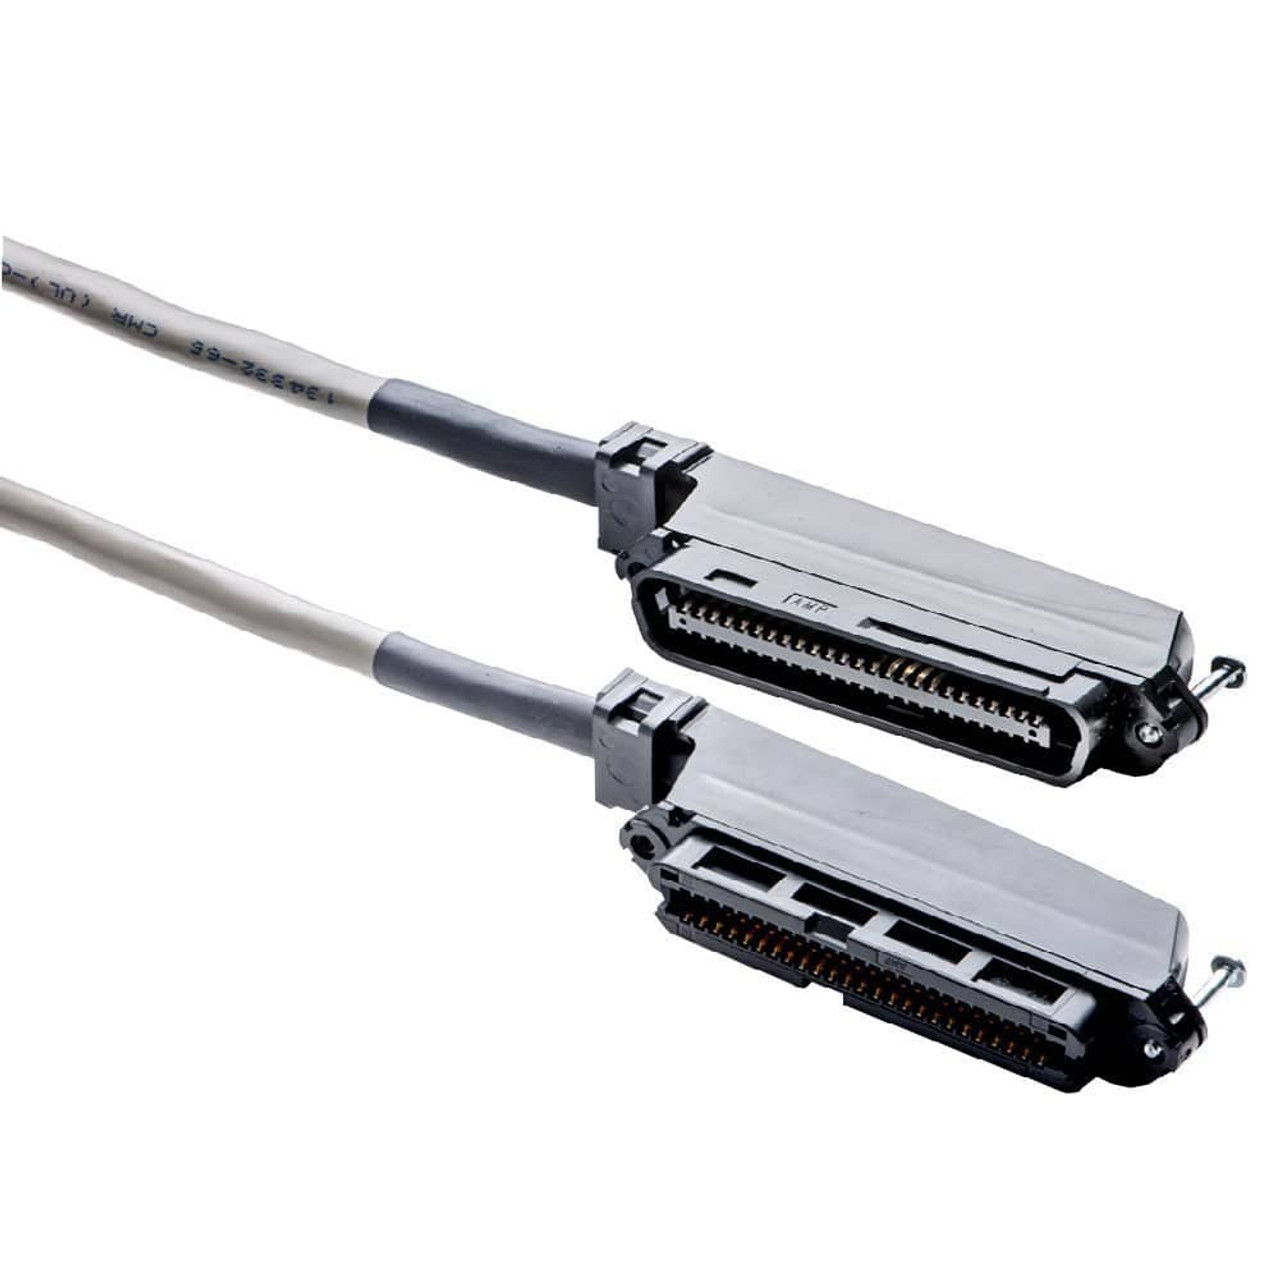 hight resolution of punch down blocks gt icc ic066nbc50 66 wiring block 50pair 25pack home gt icc gt 66